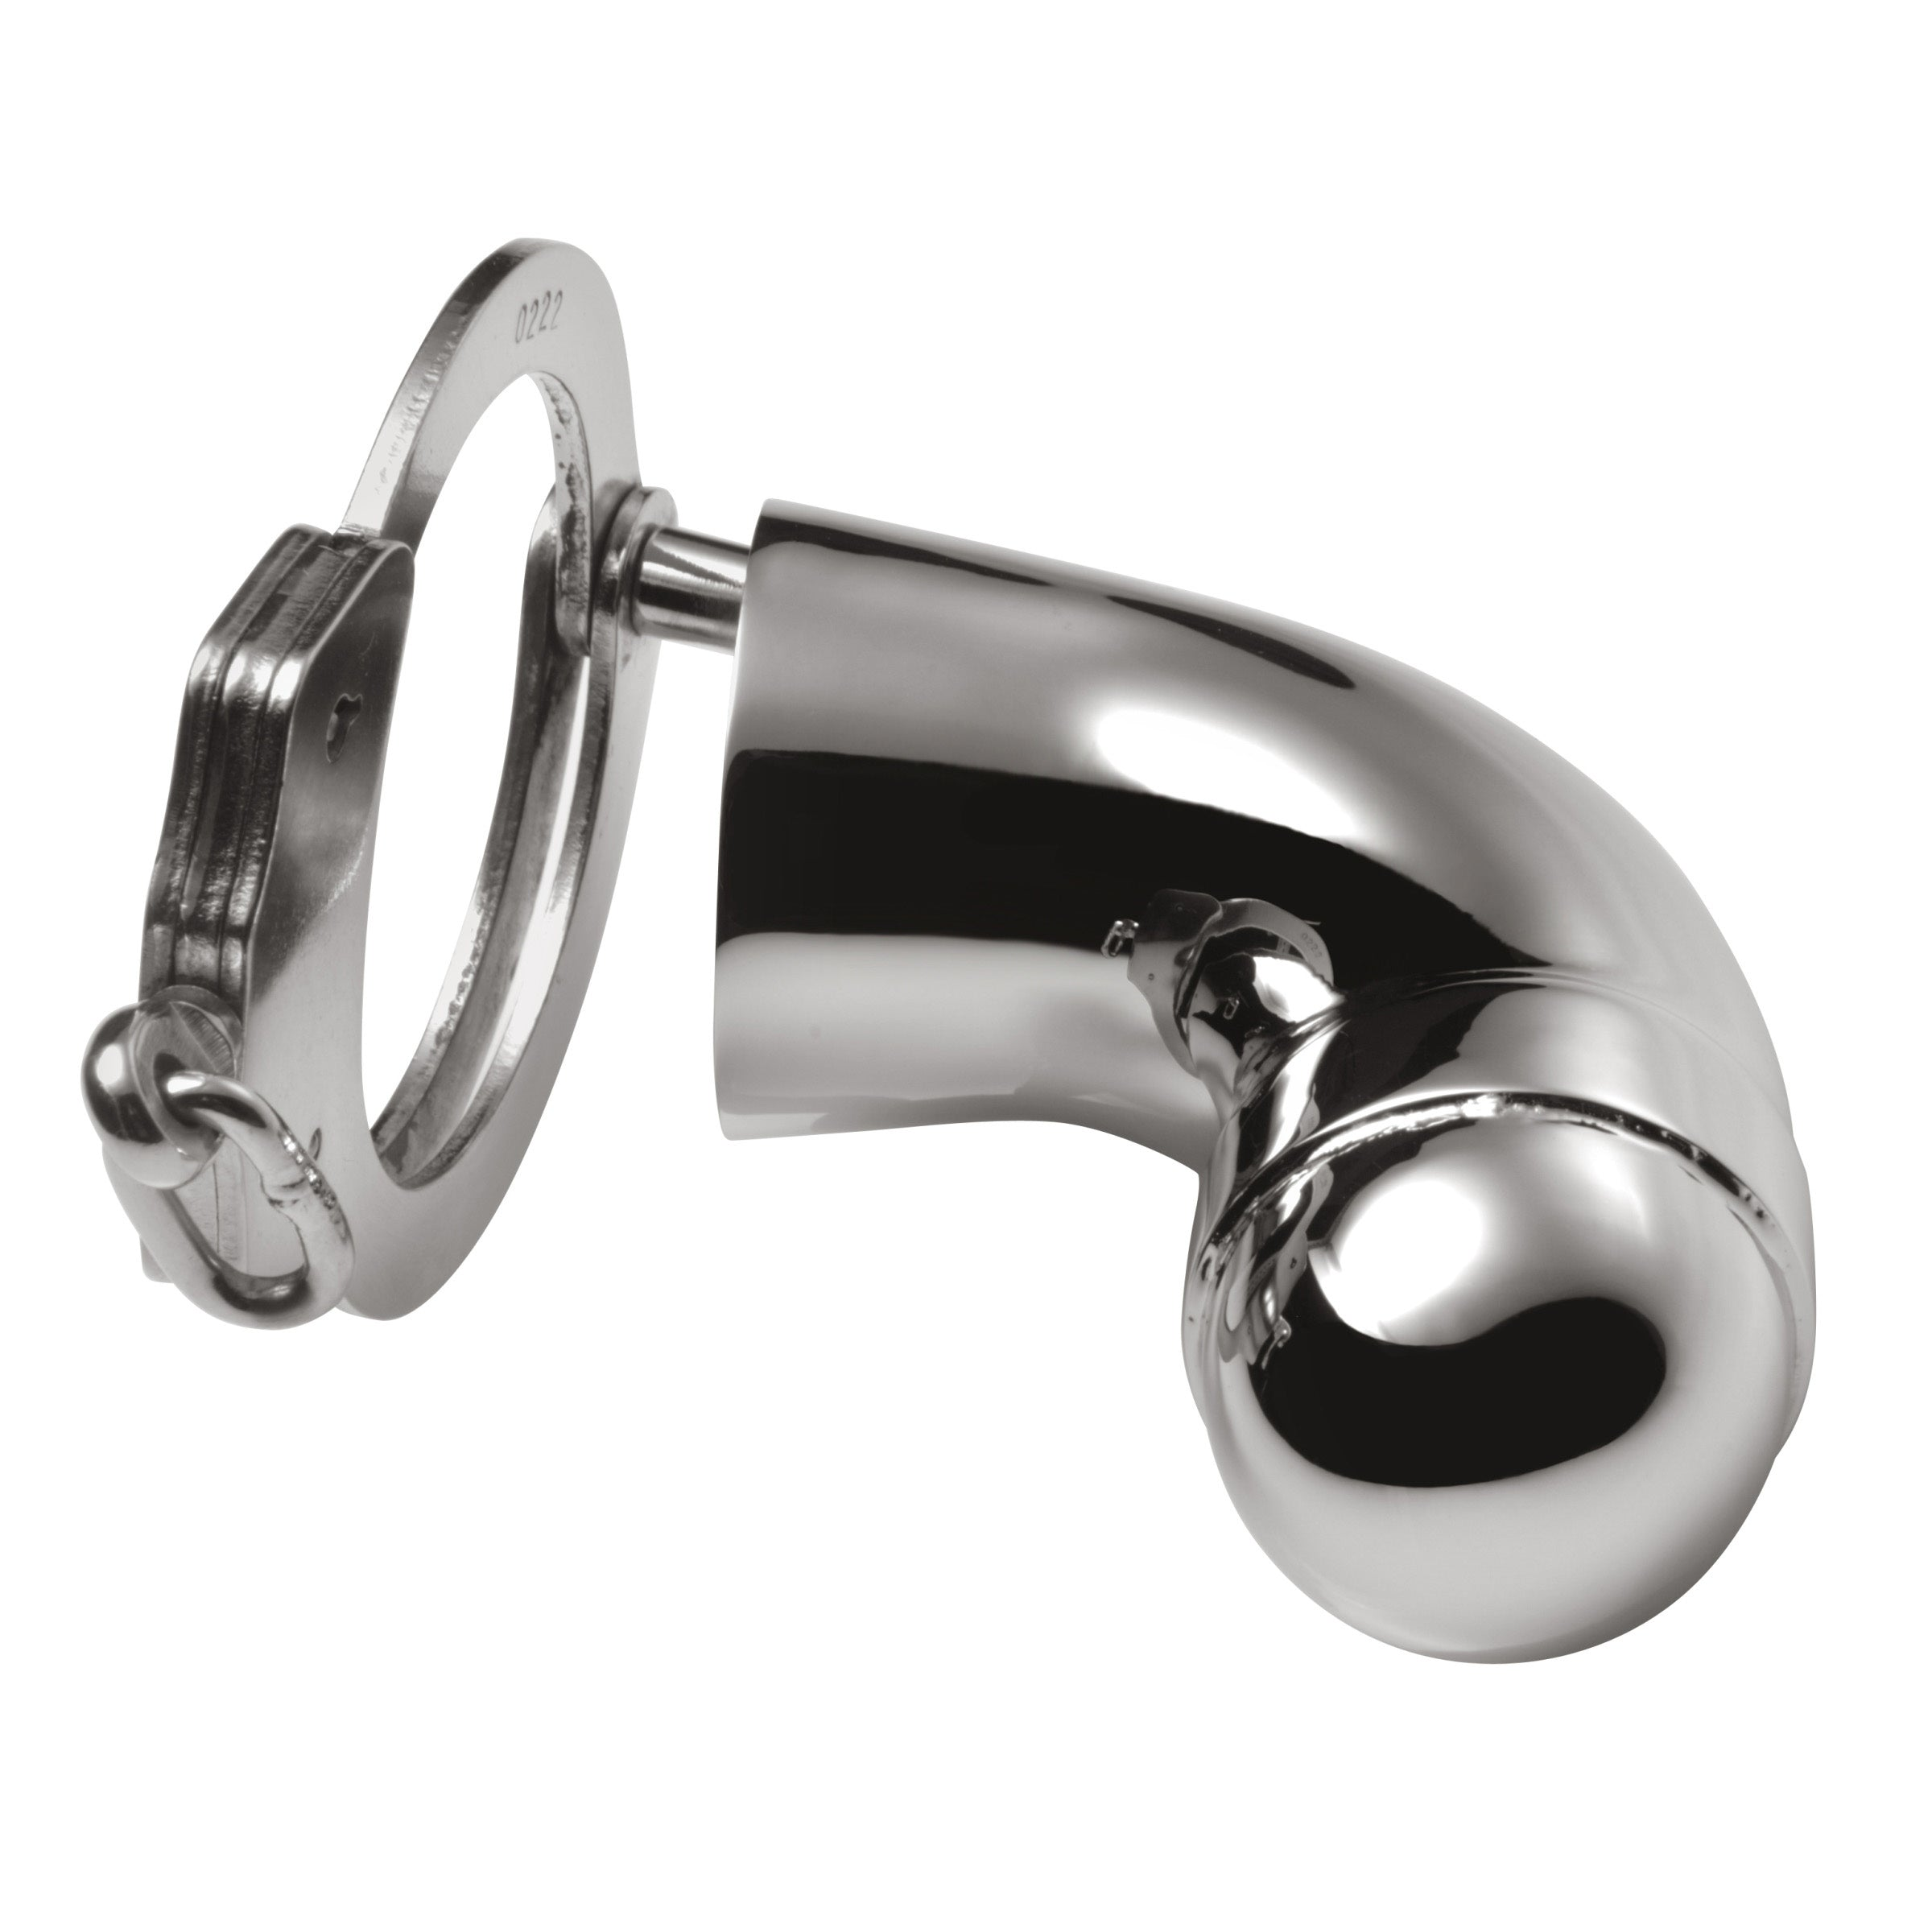 Stainless Steel Chastity Cock Cuff